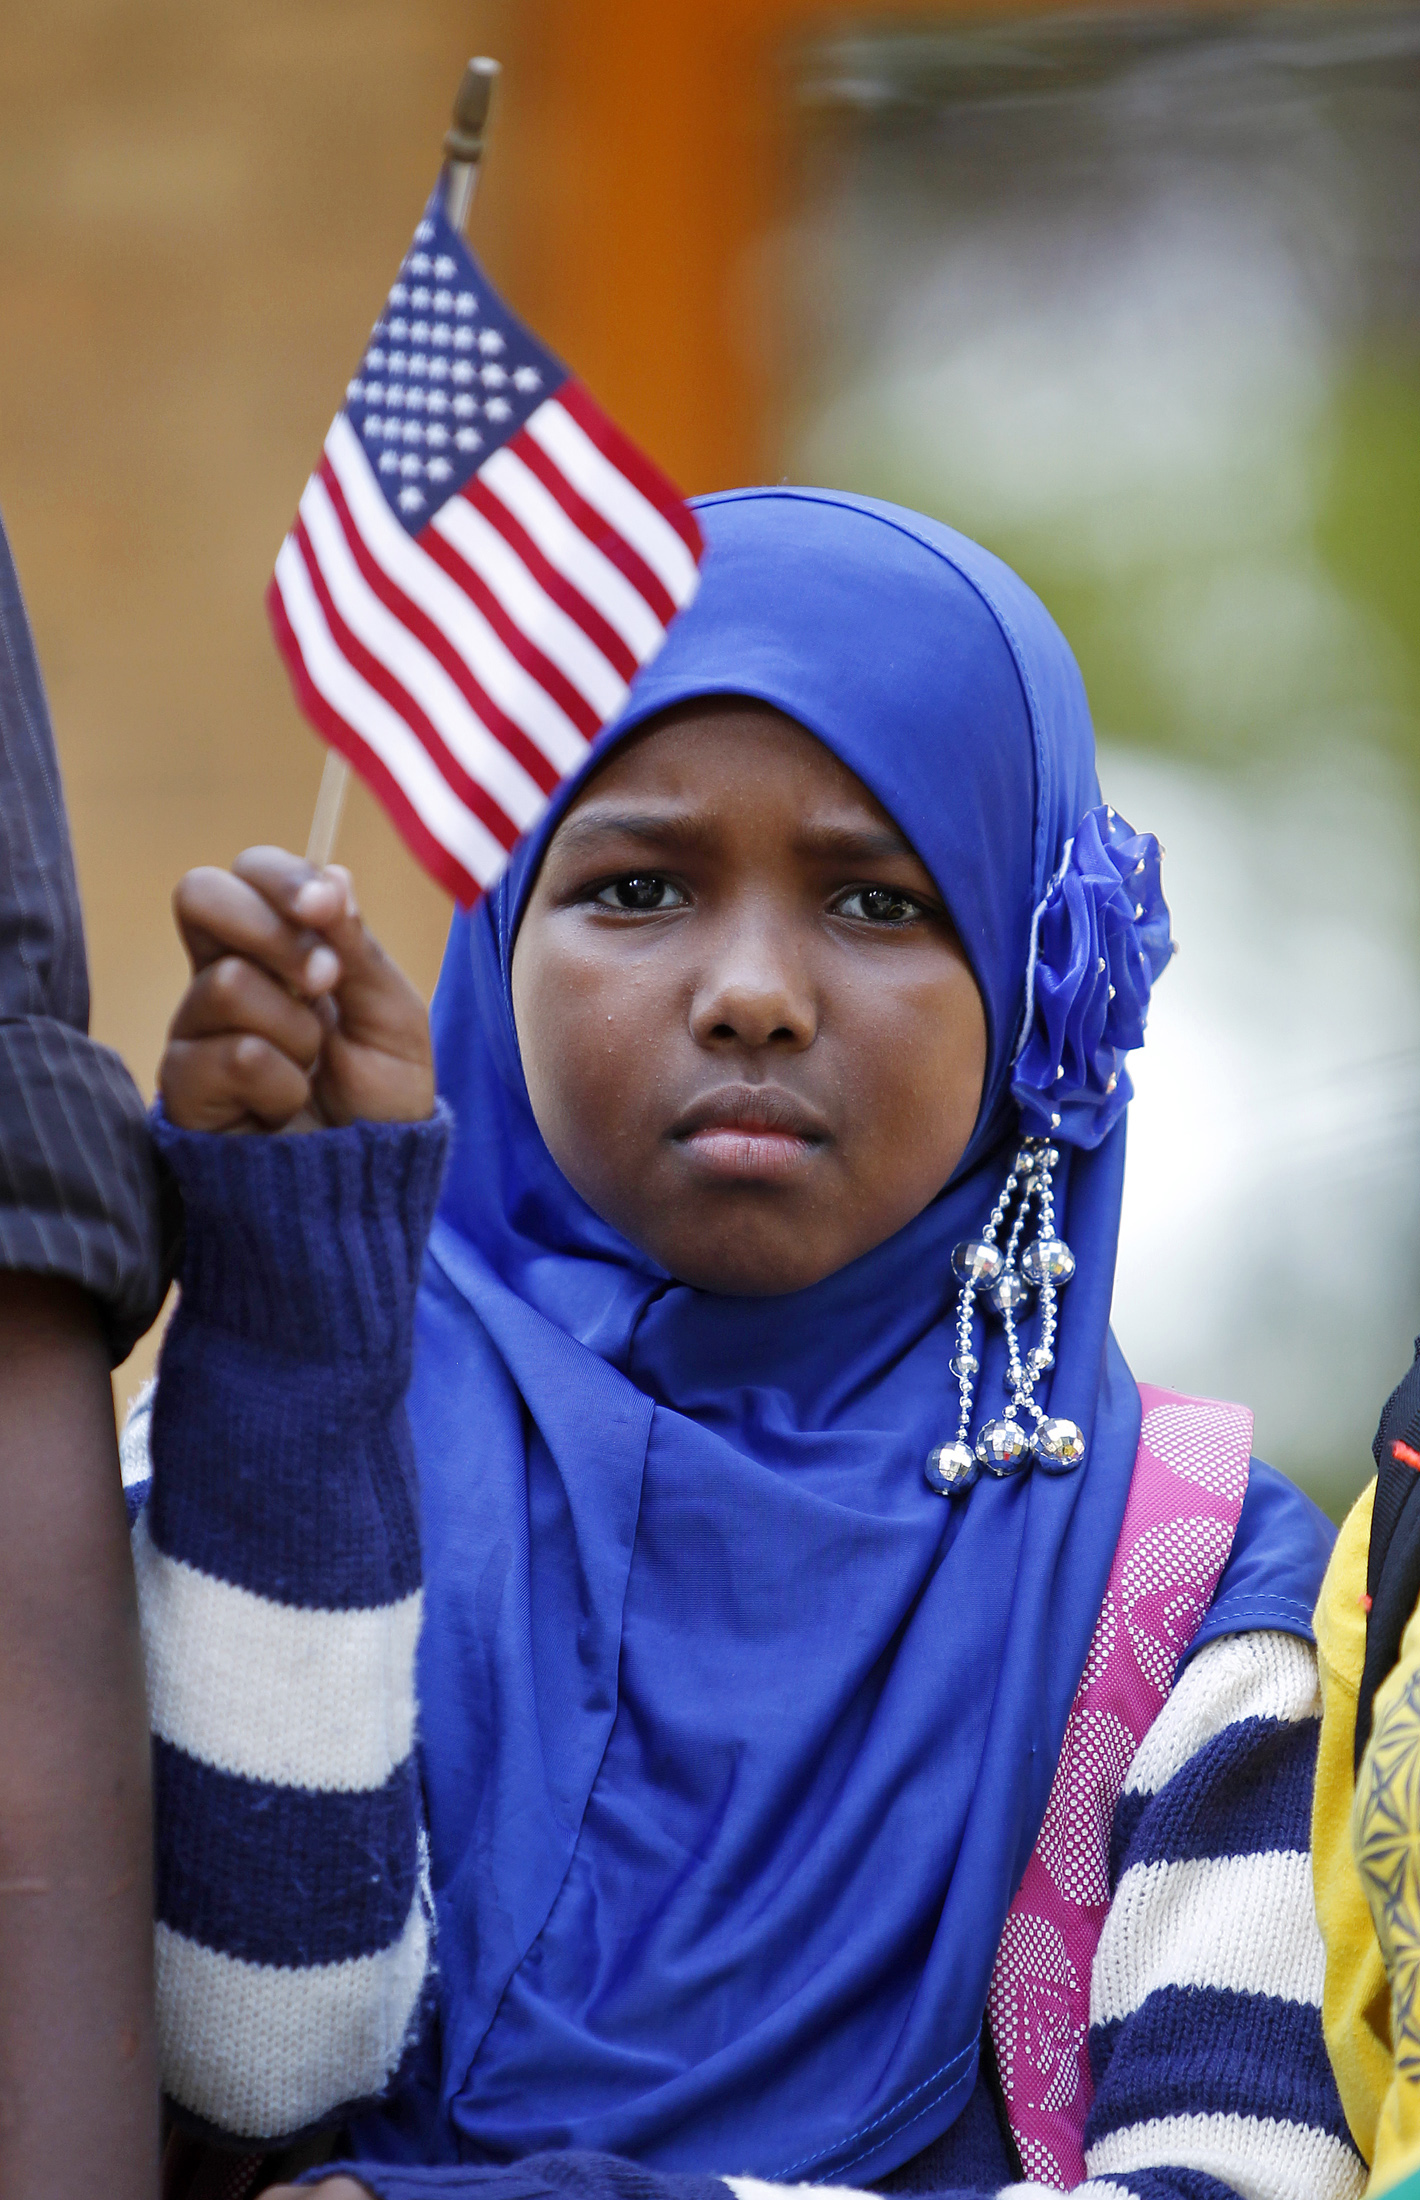 Ilhan Issa, a Somali-American girl from Minneapolis, waves an American flag.